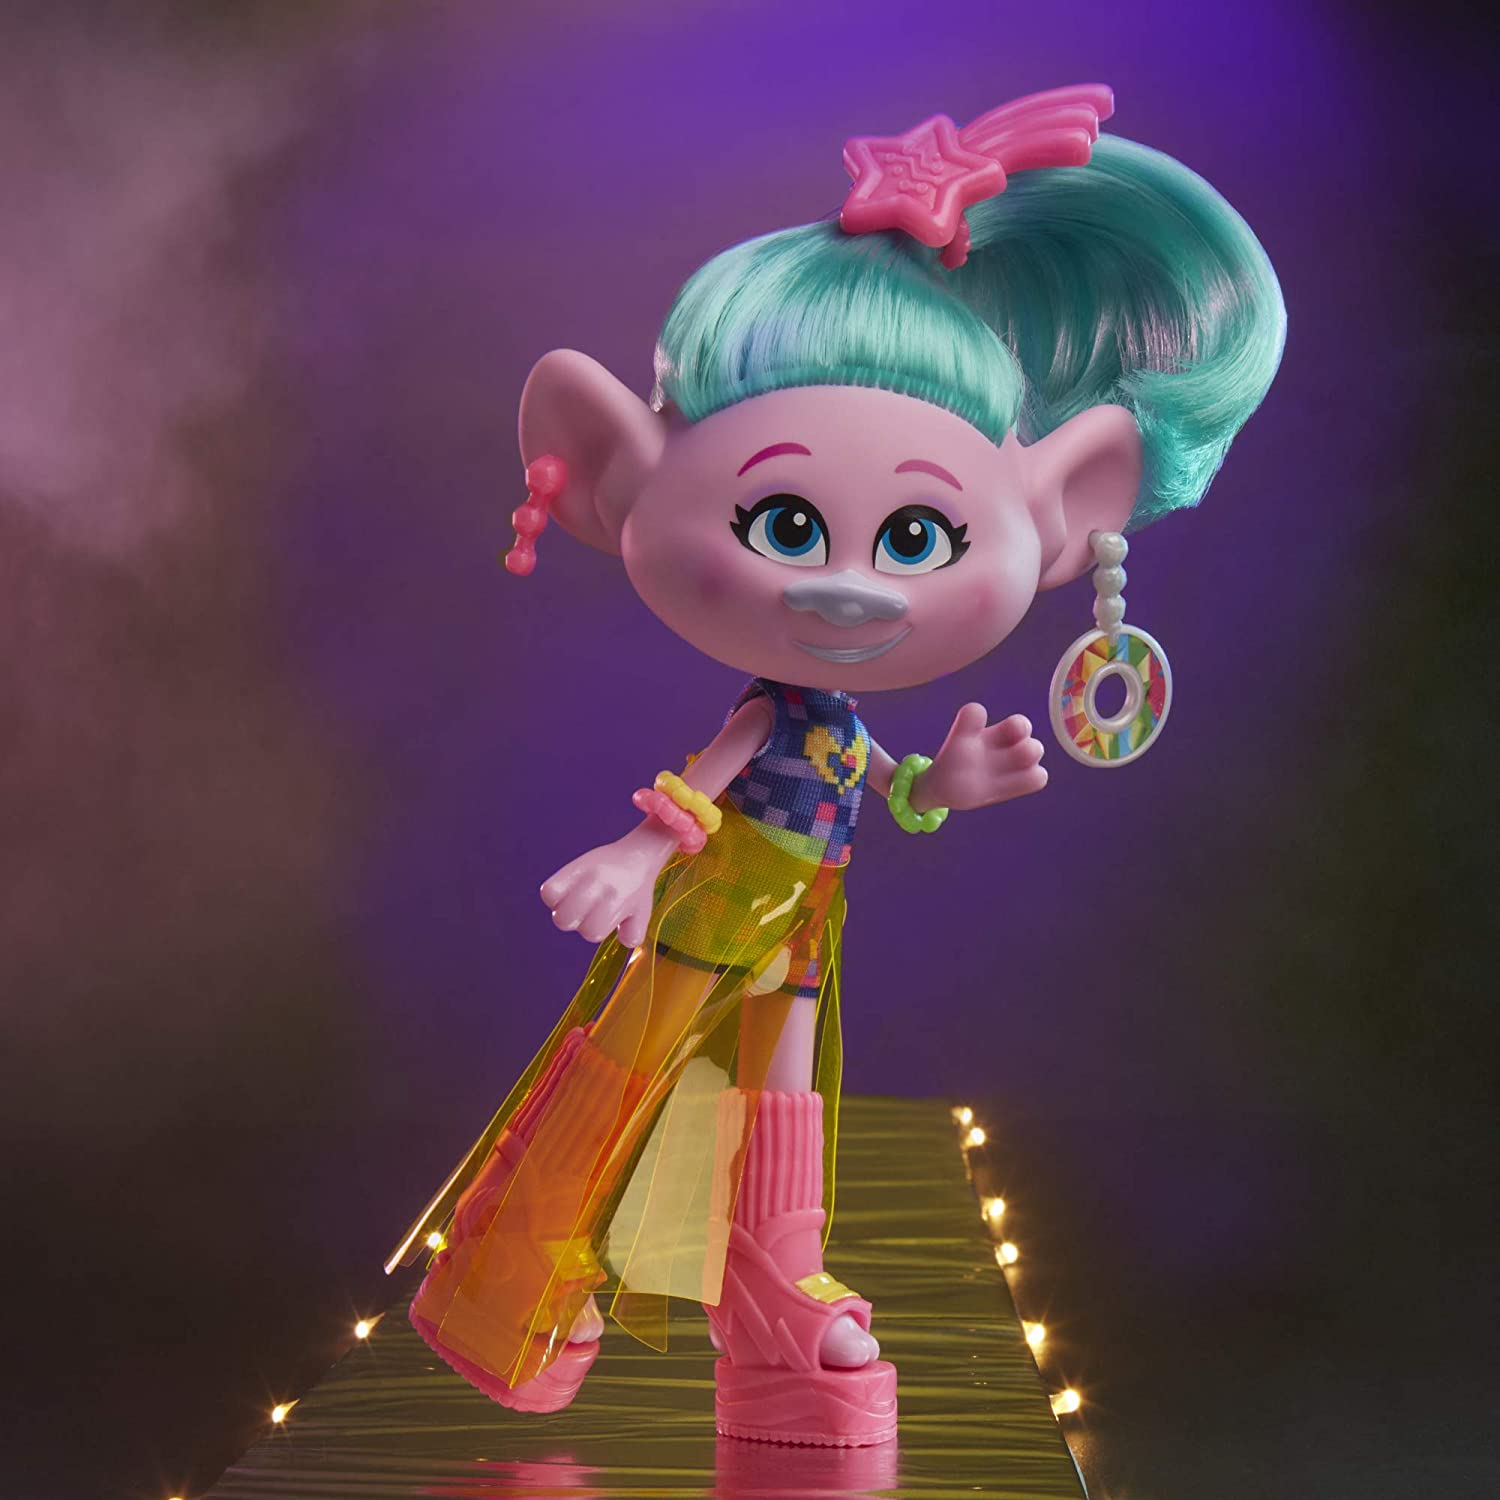 Toy for Girl 4 Years and Up Inspired by The Movie Trolls World Tour and More Shoes DREAMWORKS TROLLS Glam Satin Fashion Doll with Dress